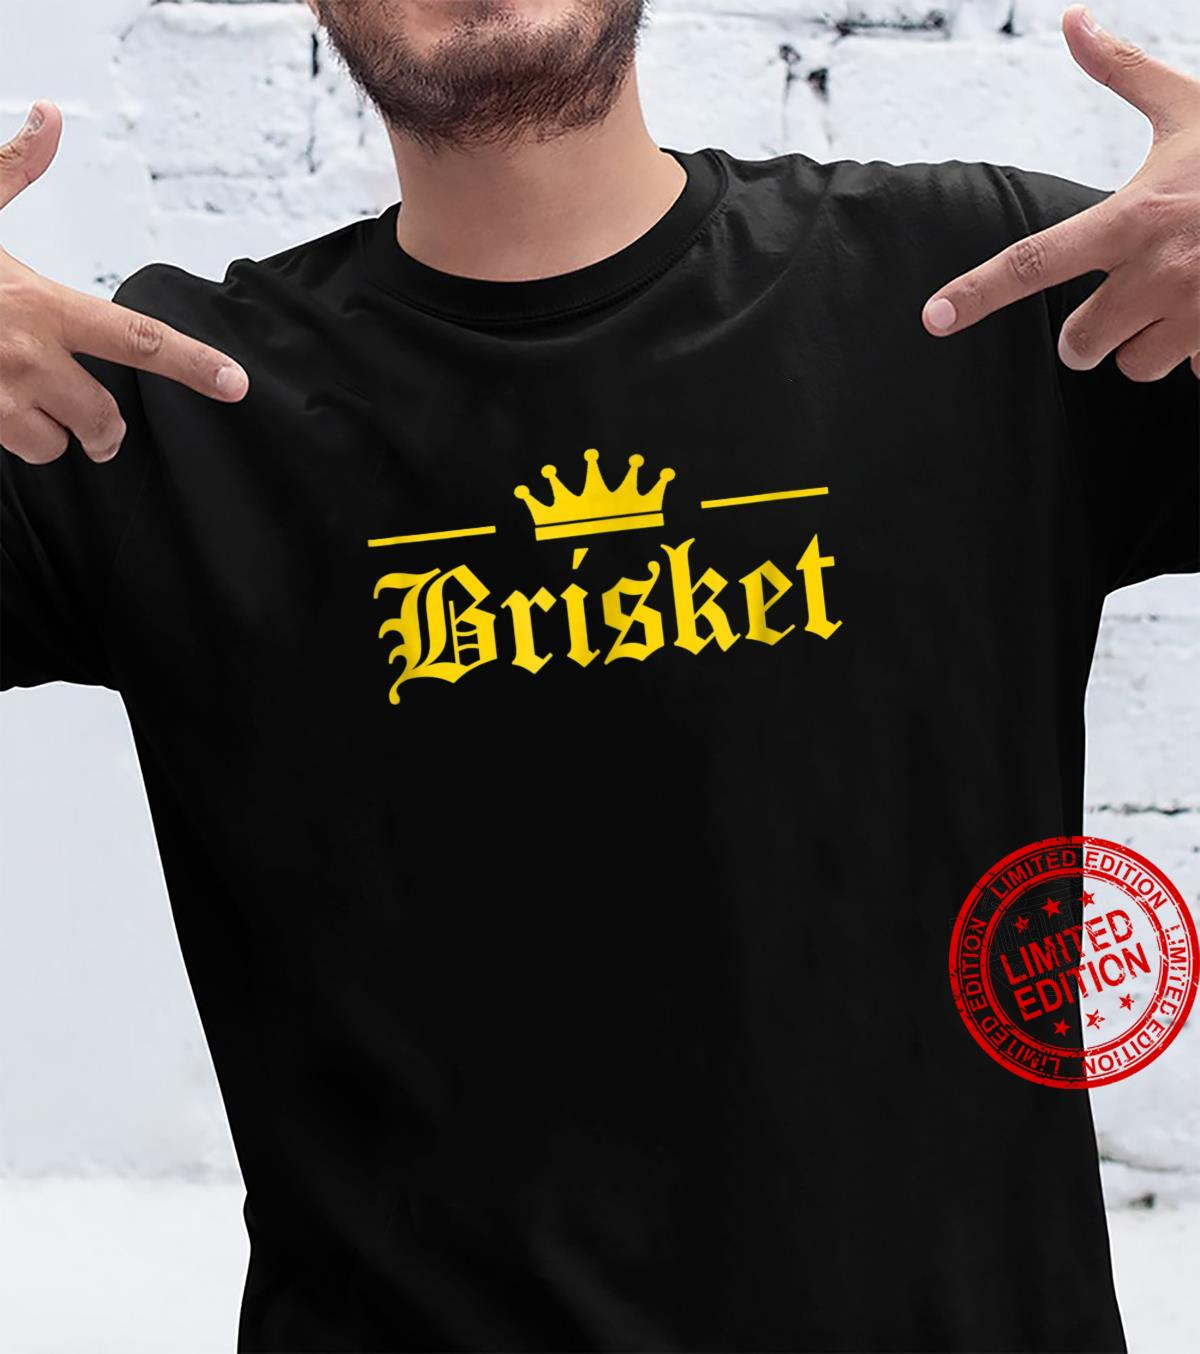 Vintage Brisket Is King Latino Style Shirt